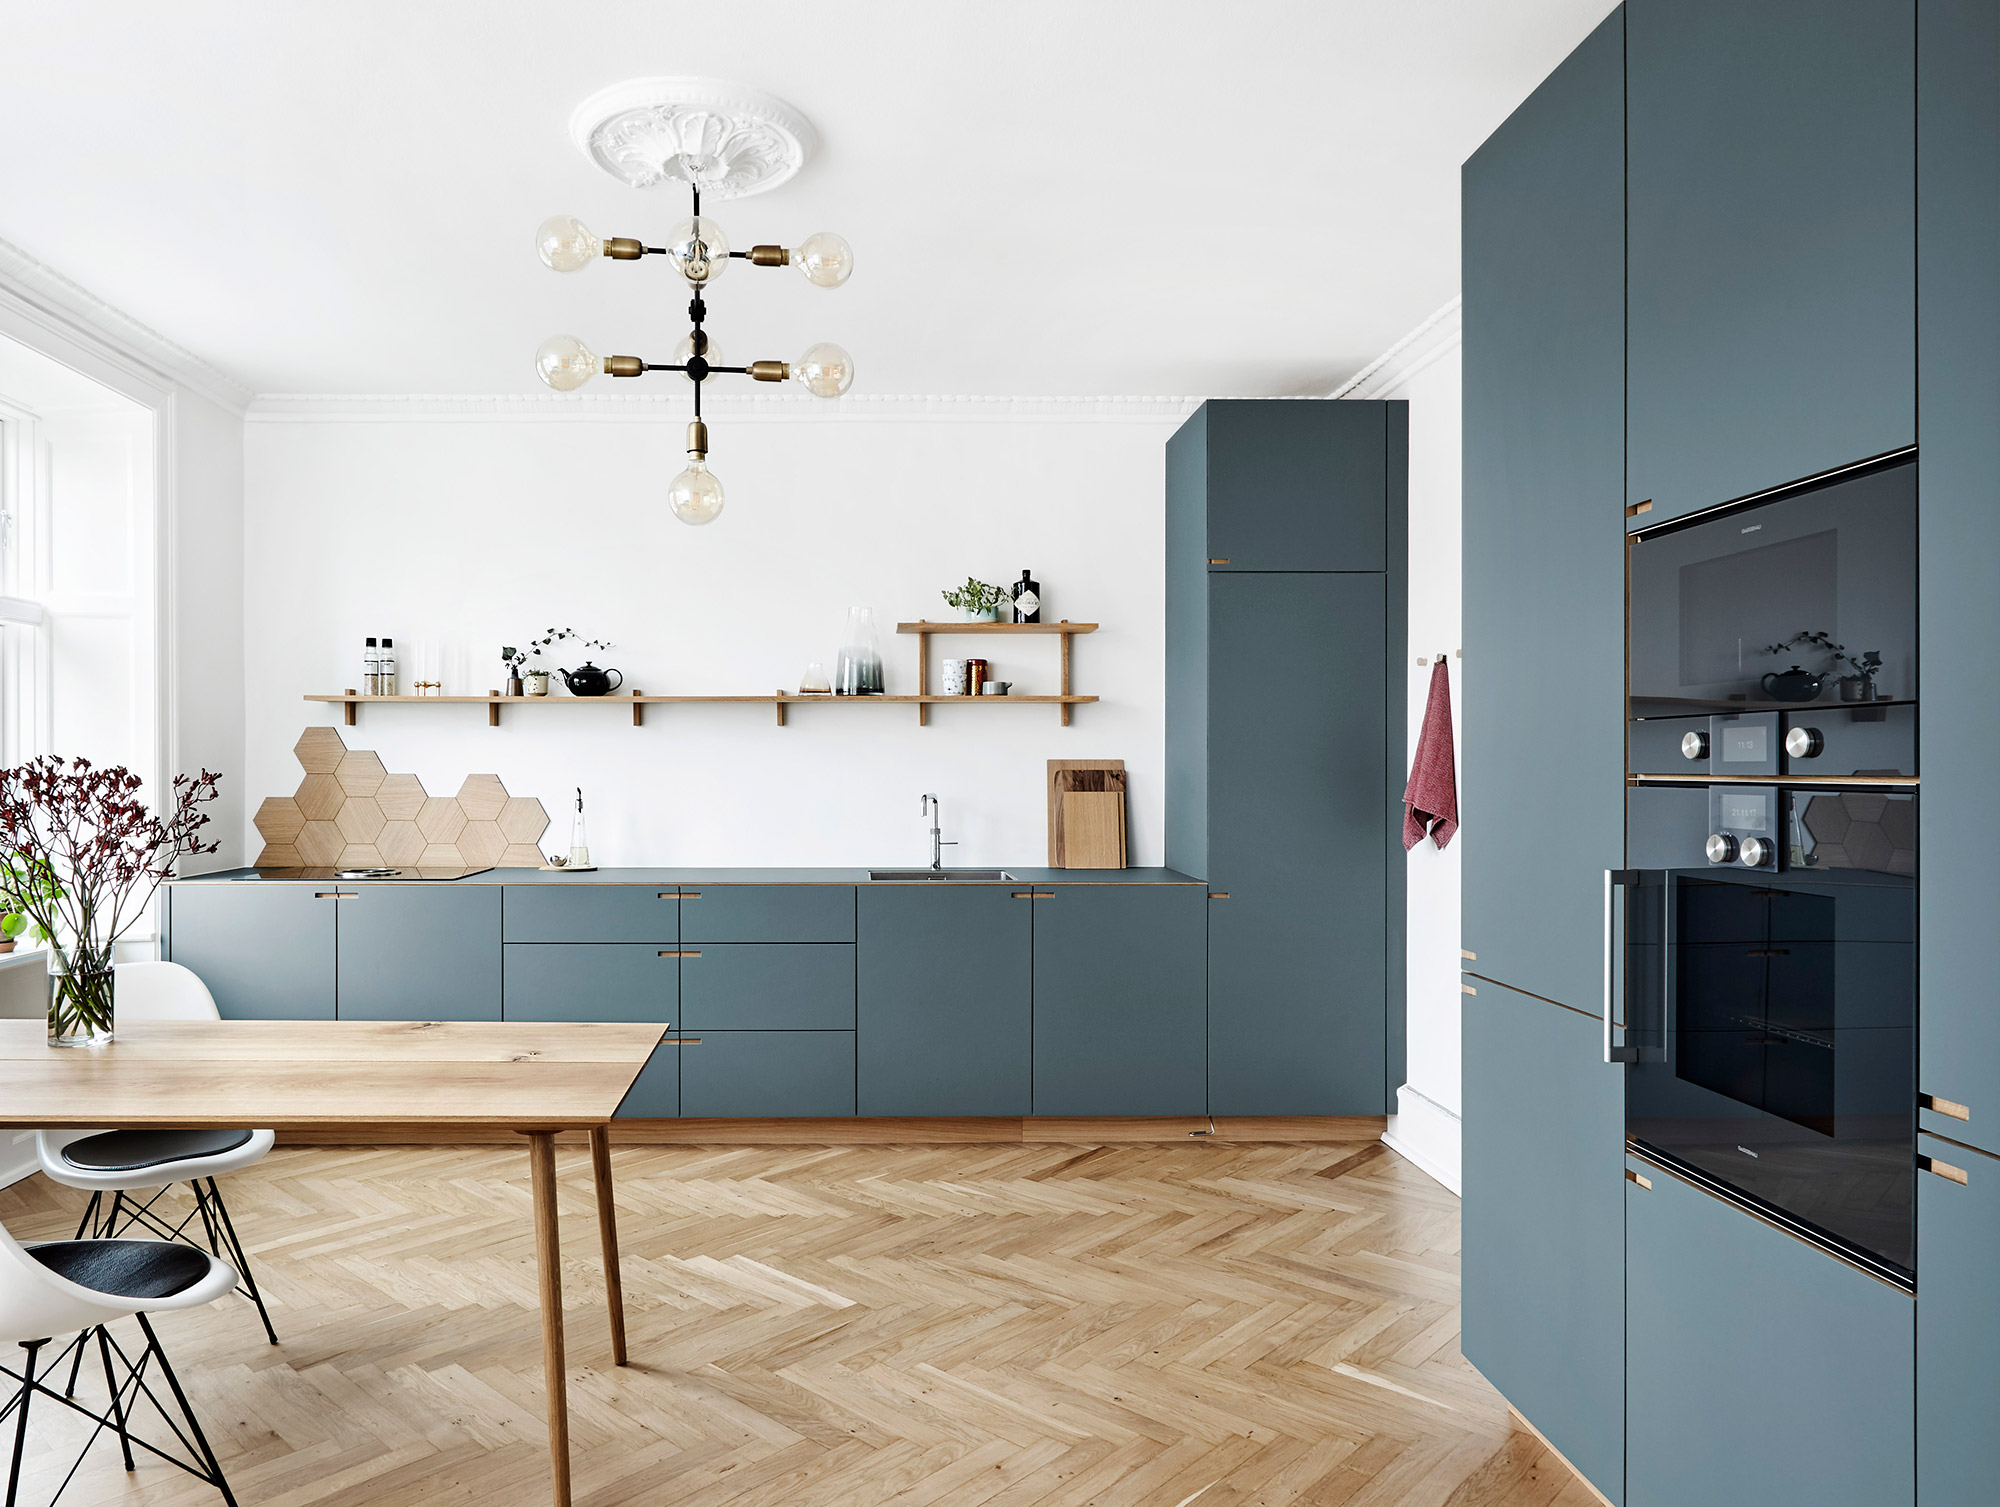 The bespoke kitchen at Øster Søgade, Copenhagen - designet and produced by Nicolaj Bo™